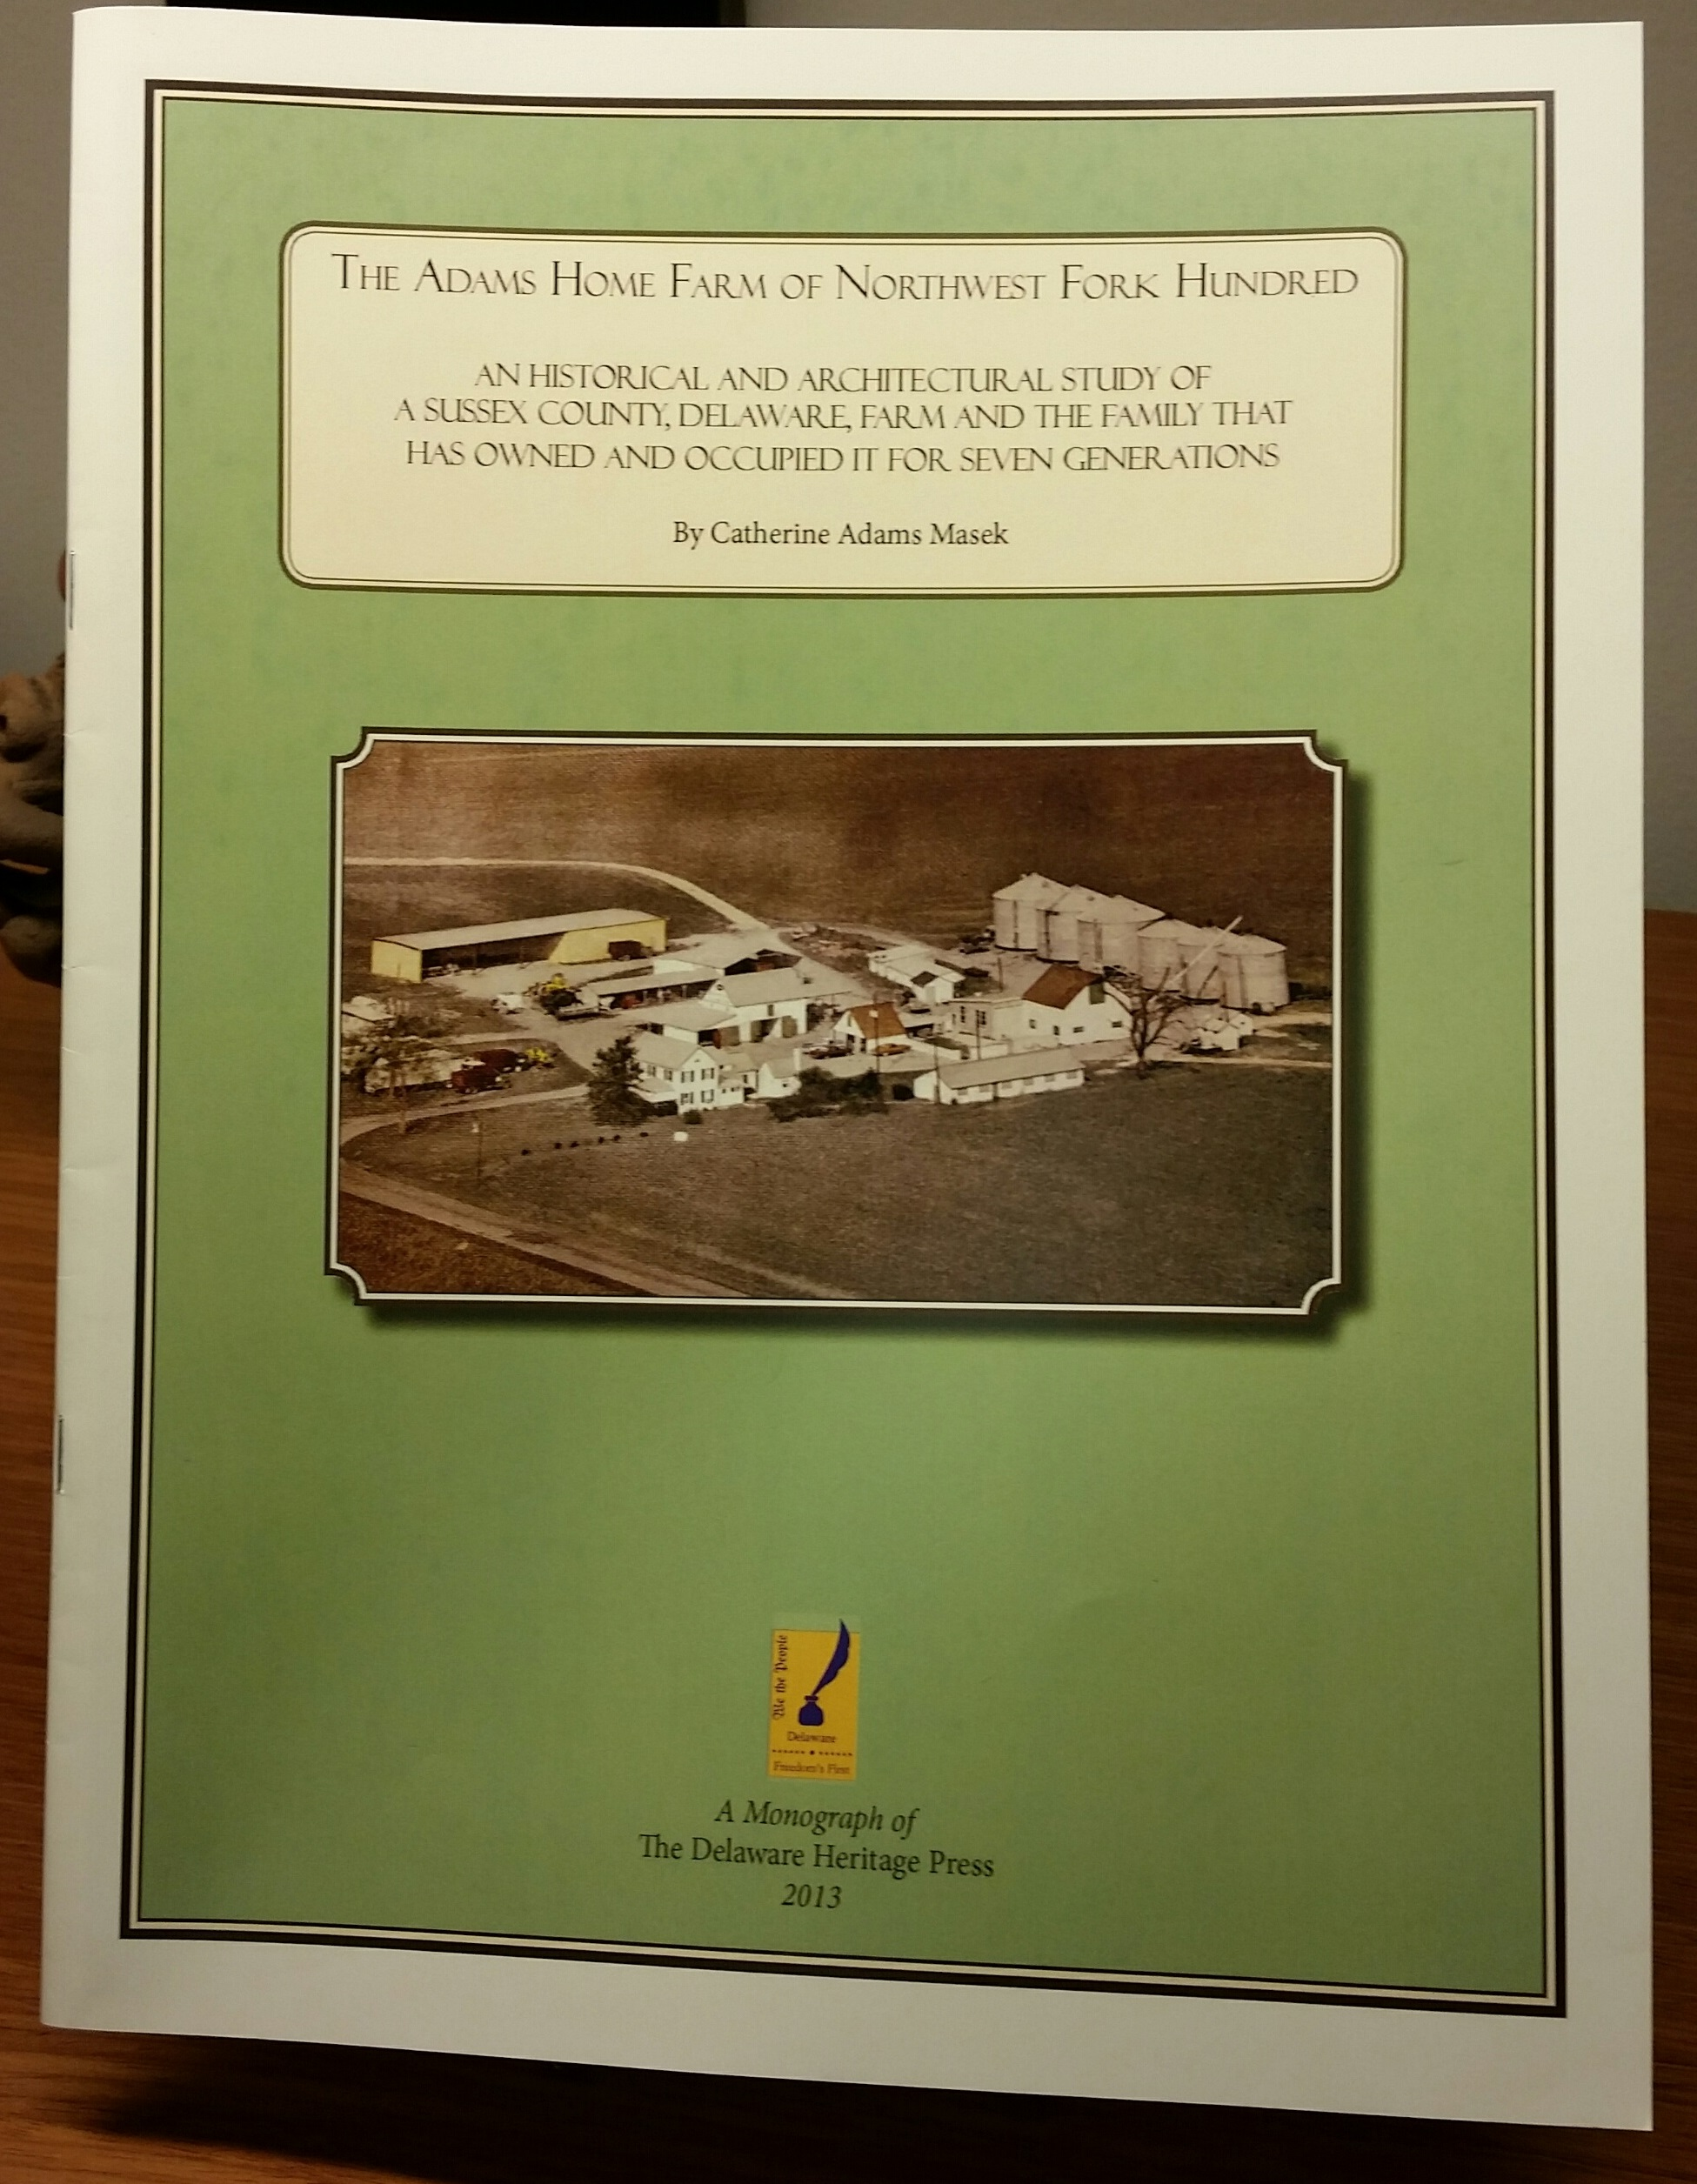 The Adams Home Farm of Northwest Fork Hundred, Catherine Adams Masek, 2013, 36 pp. PAPERBACK. Prices reflect the cost of the book PLUS S&H fee of $3.00.